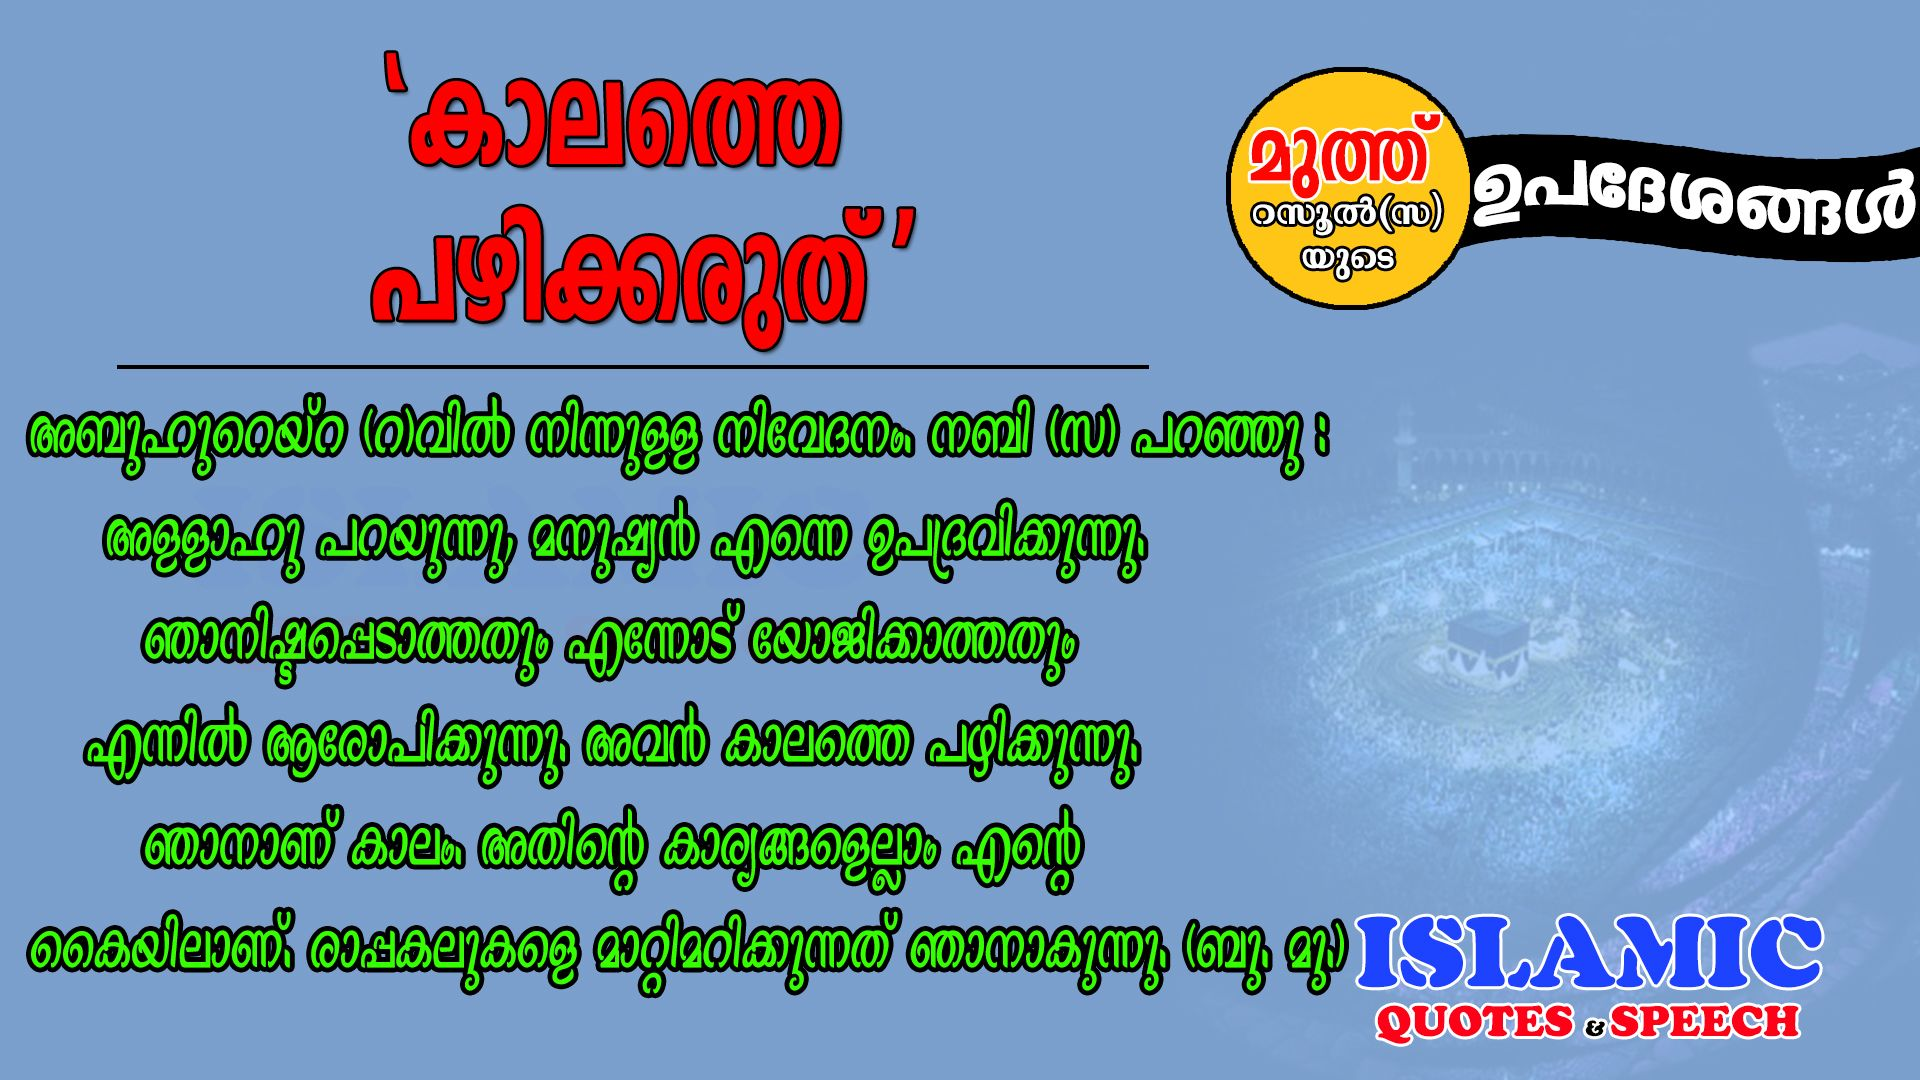 Pin by Islamic Quotes & Speech on MALAYALAM ISLAMIC QUOTES